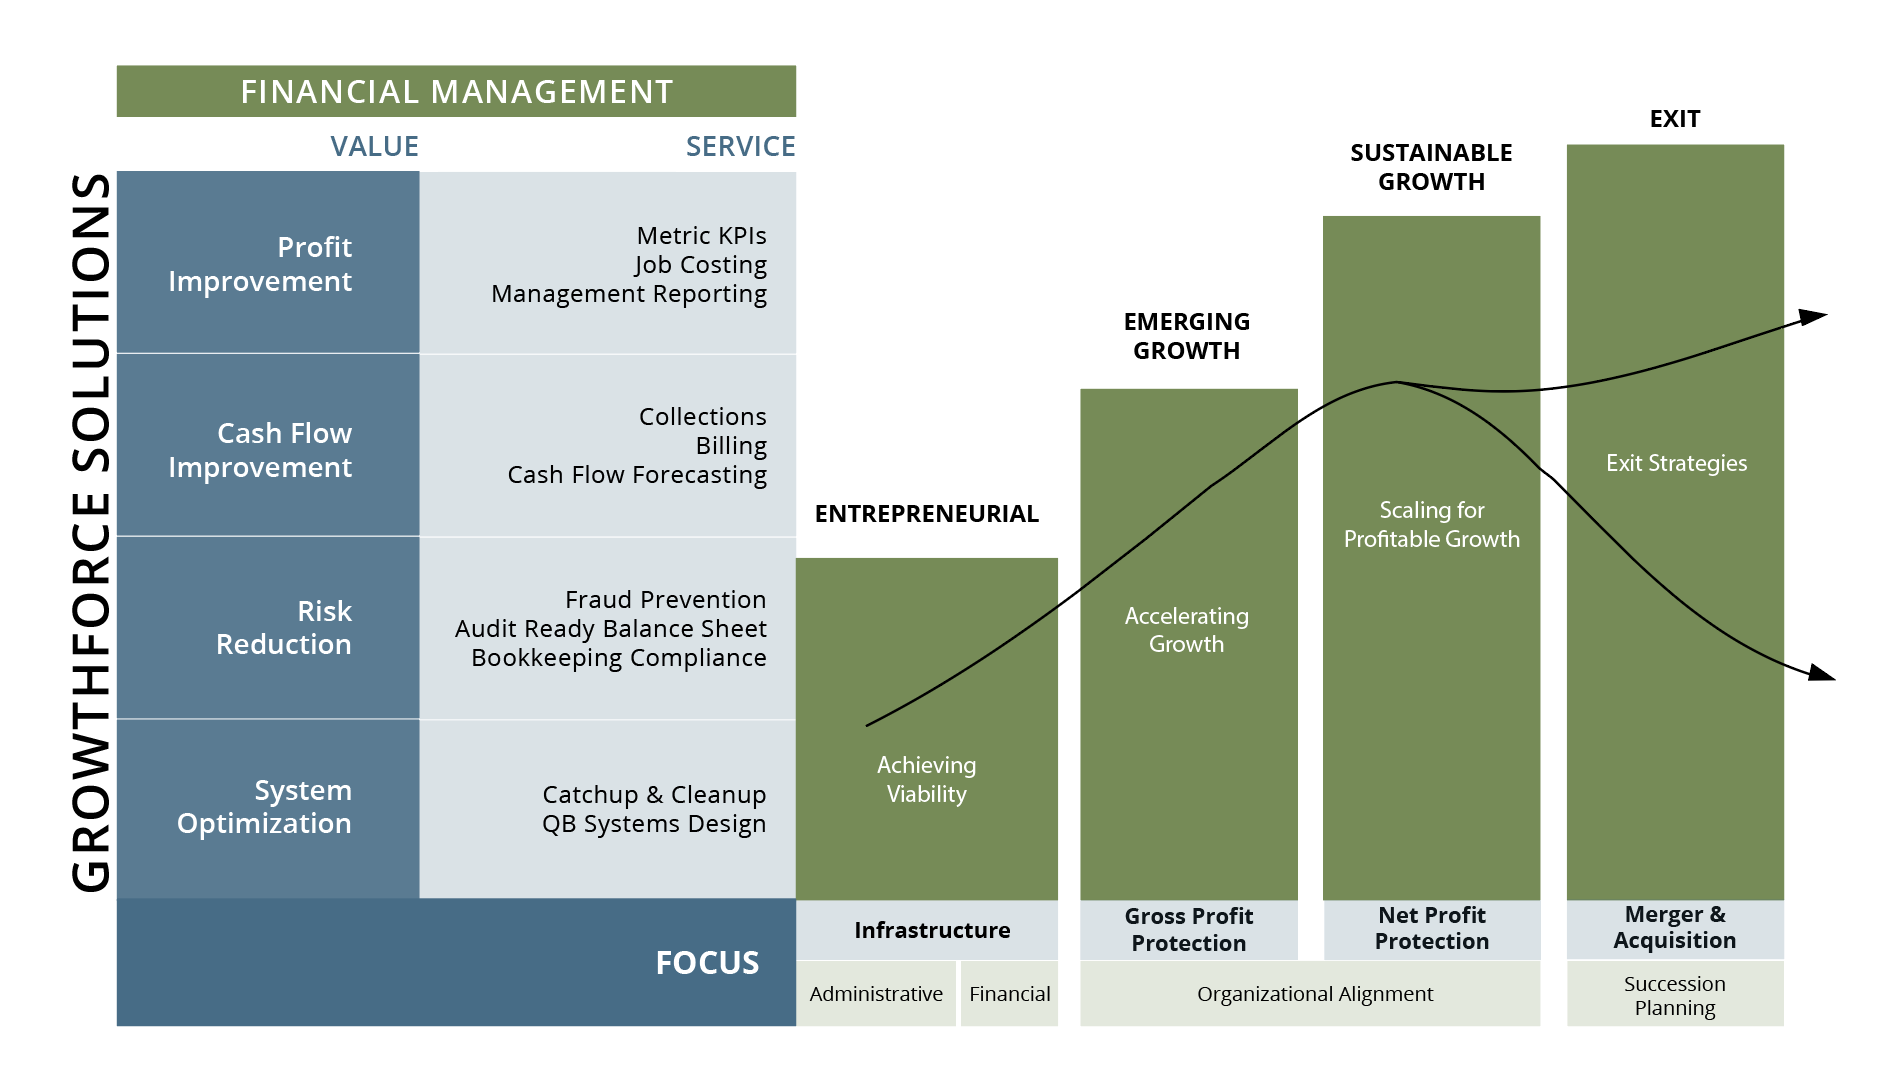 Business Financial Management and Lifecycle Stages